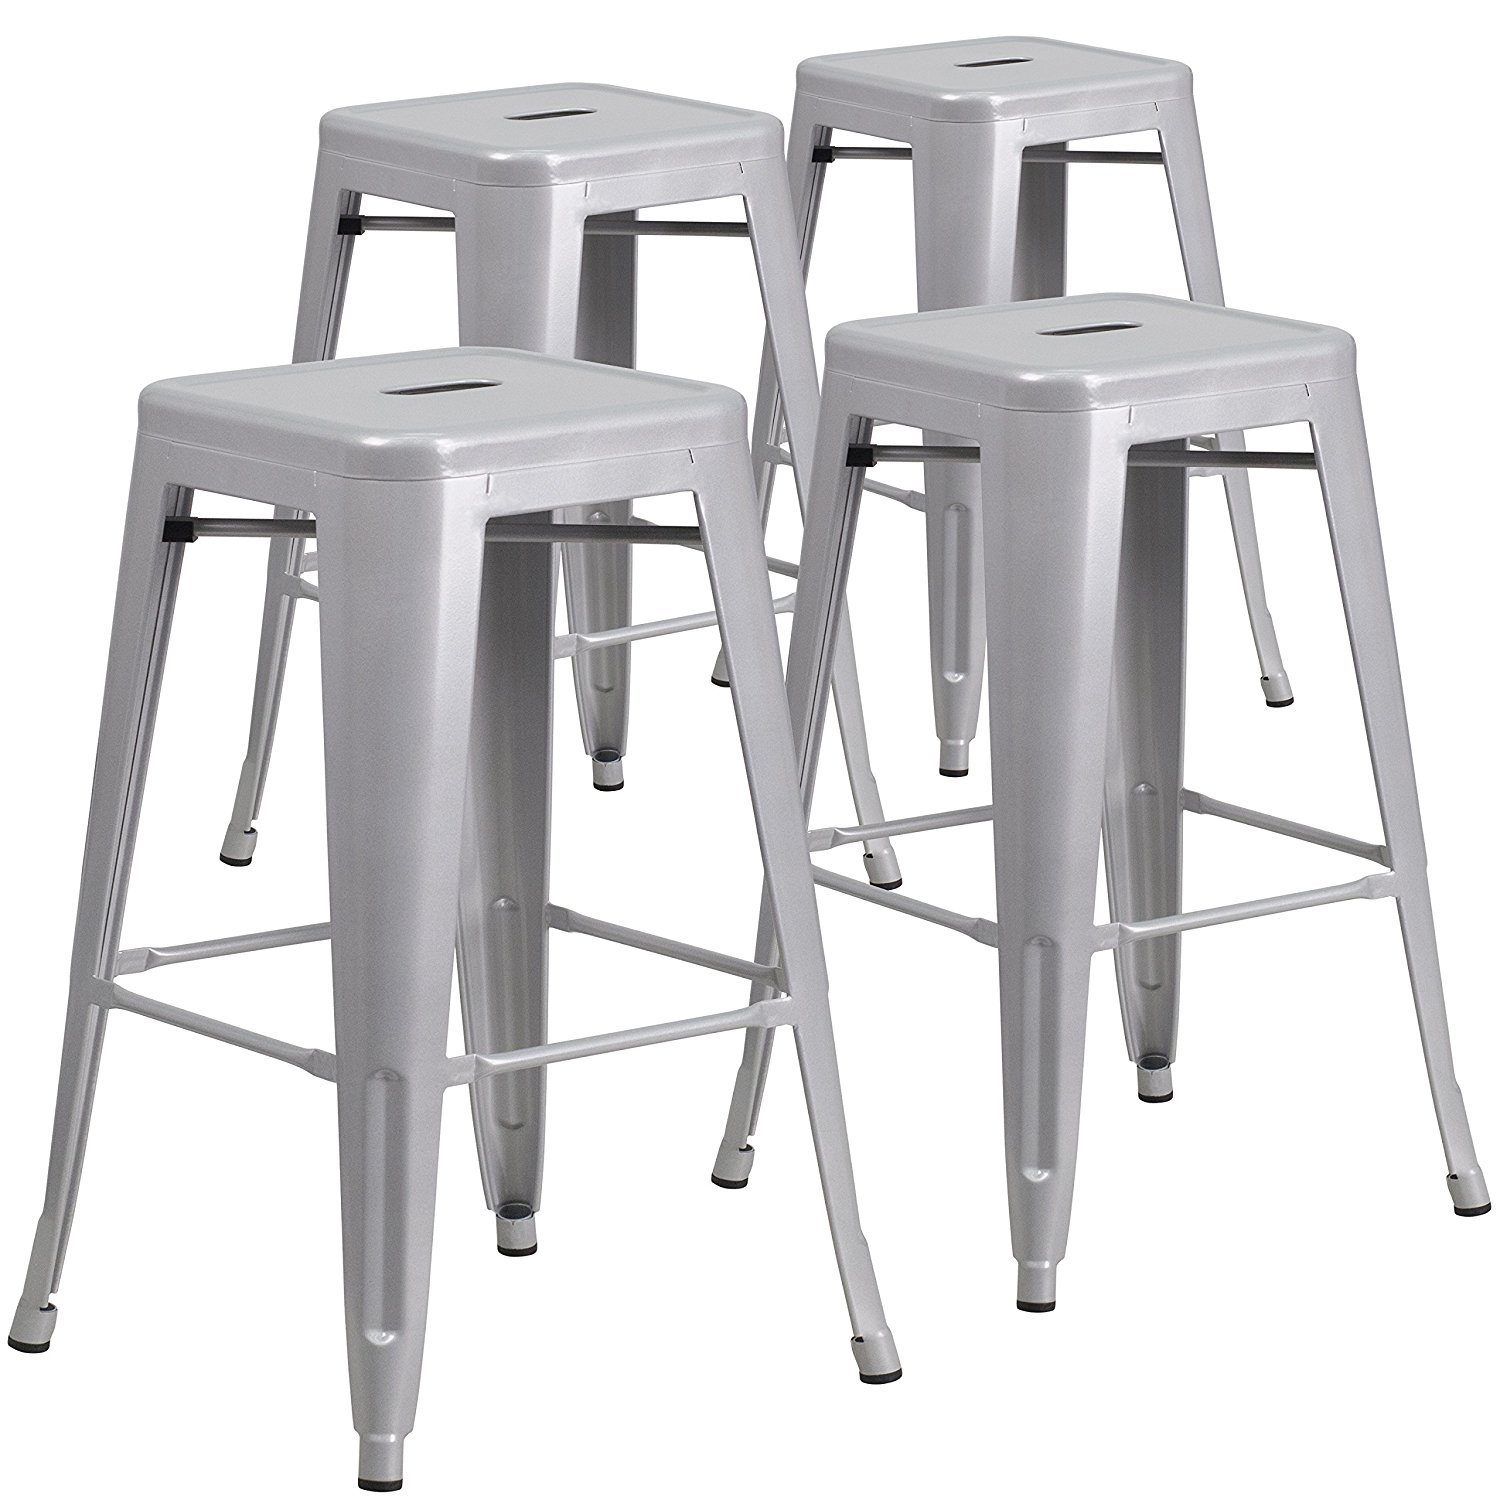 "Belleze Set of 4PC Modern Industrial Bar Stools 30""inch Seat Height- Silver"